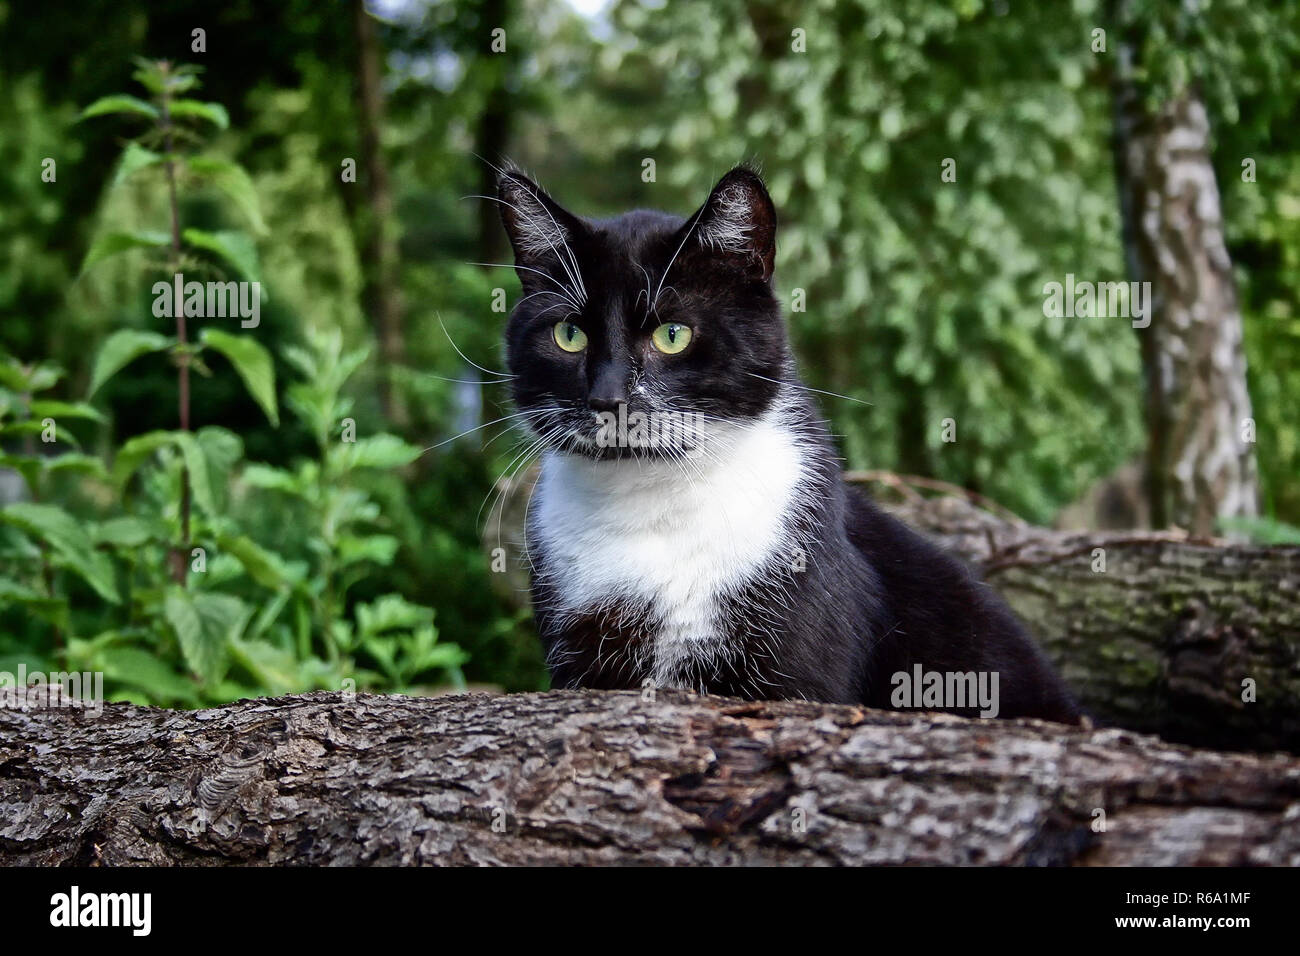 Cat On A Woodstack - Stock Image